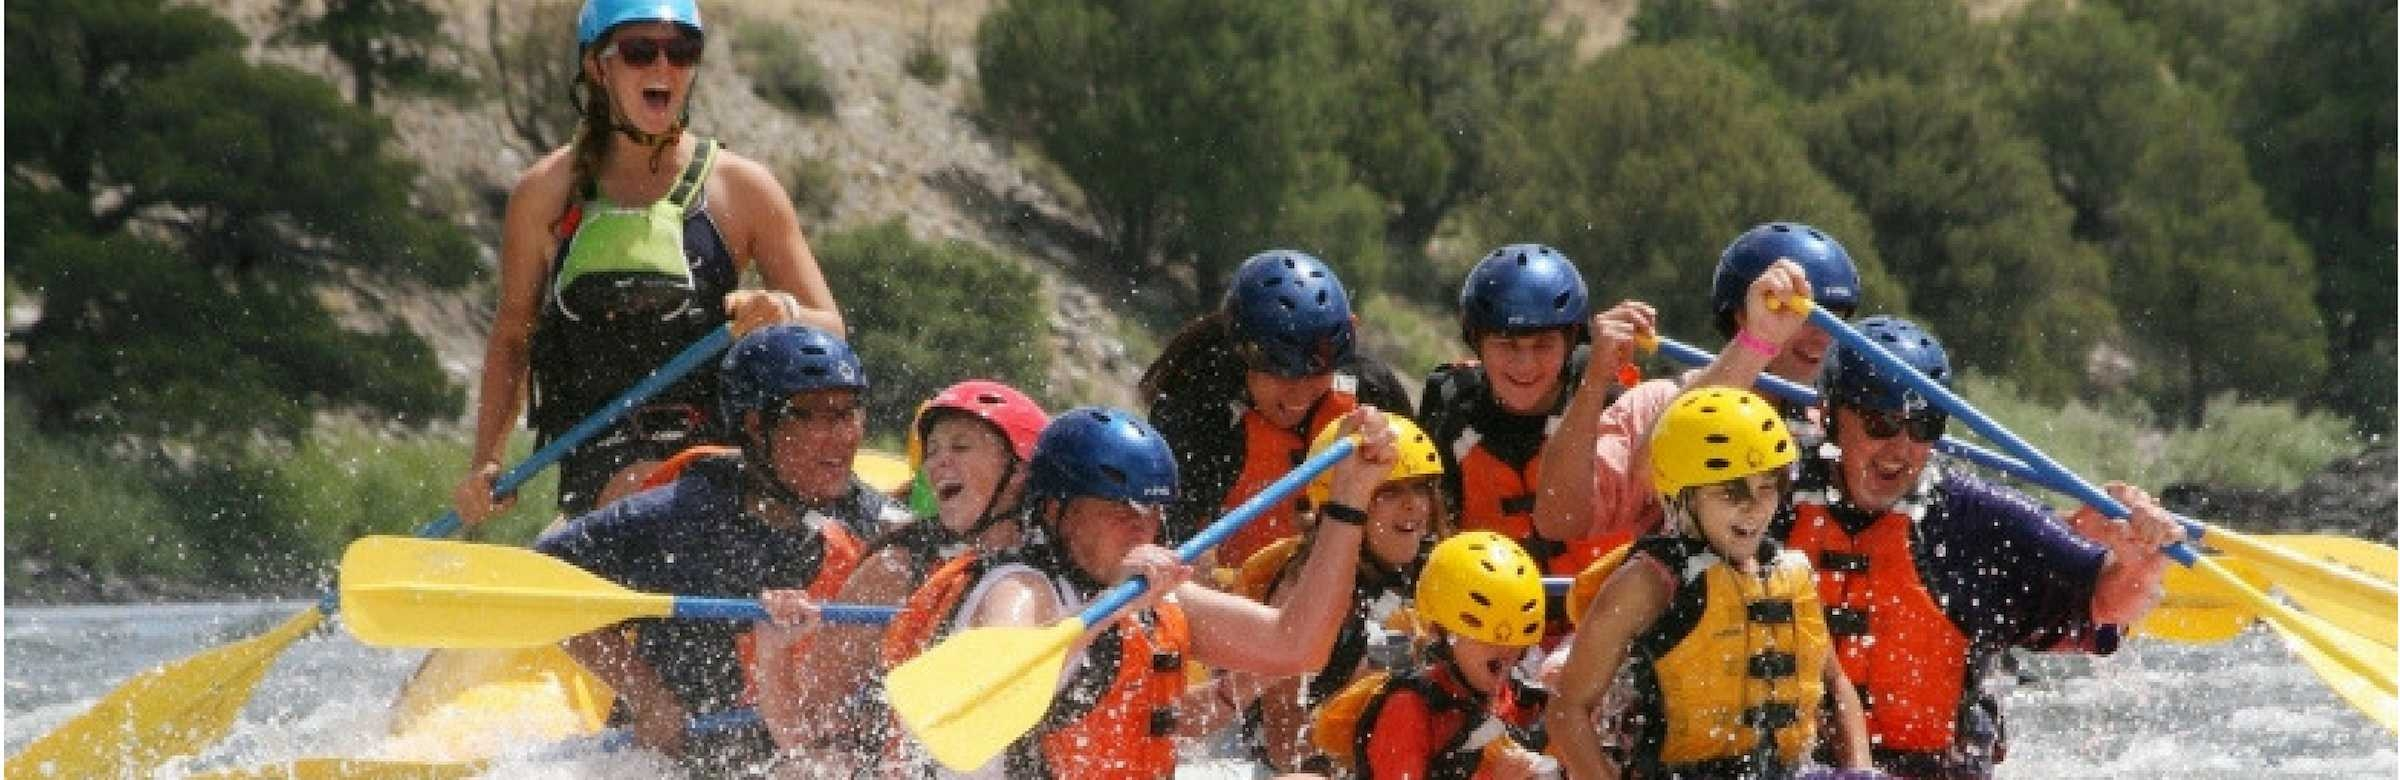 Join us for your families great adventure!